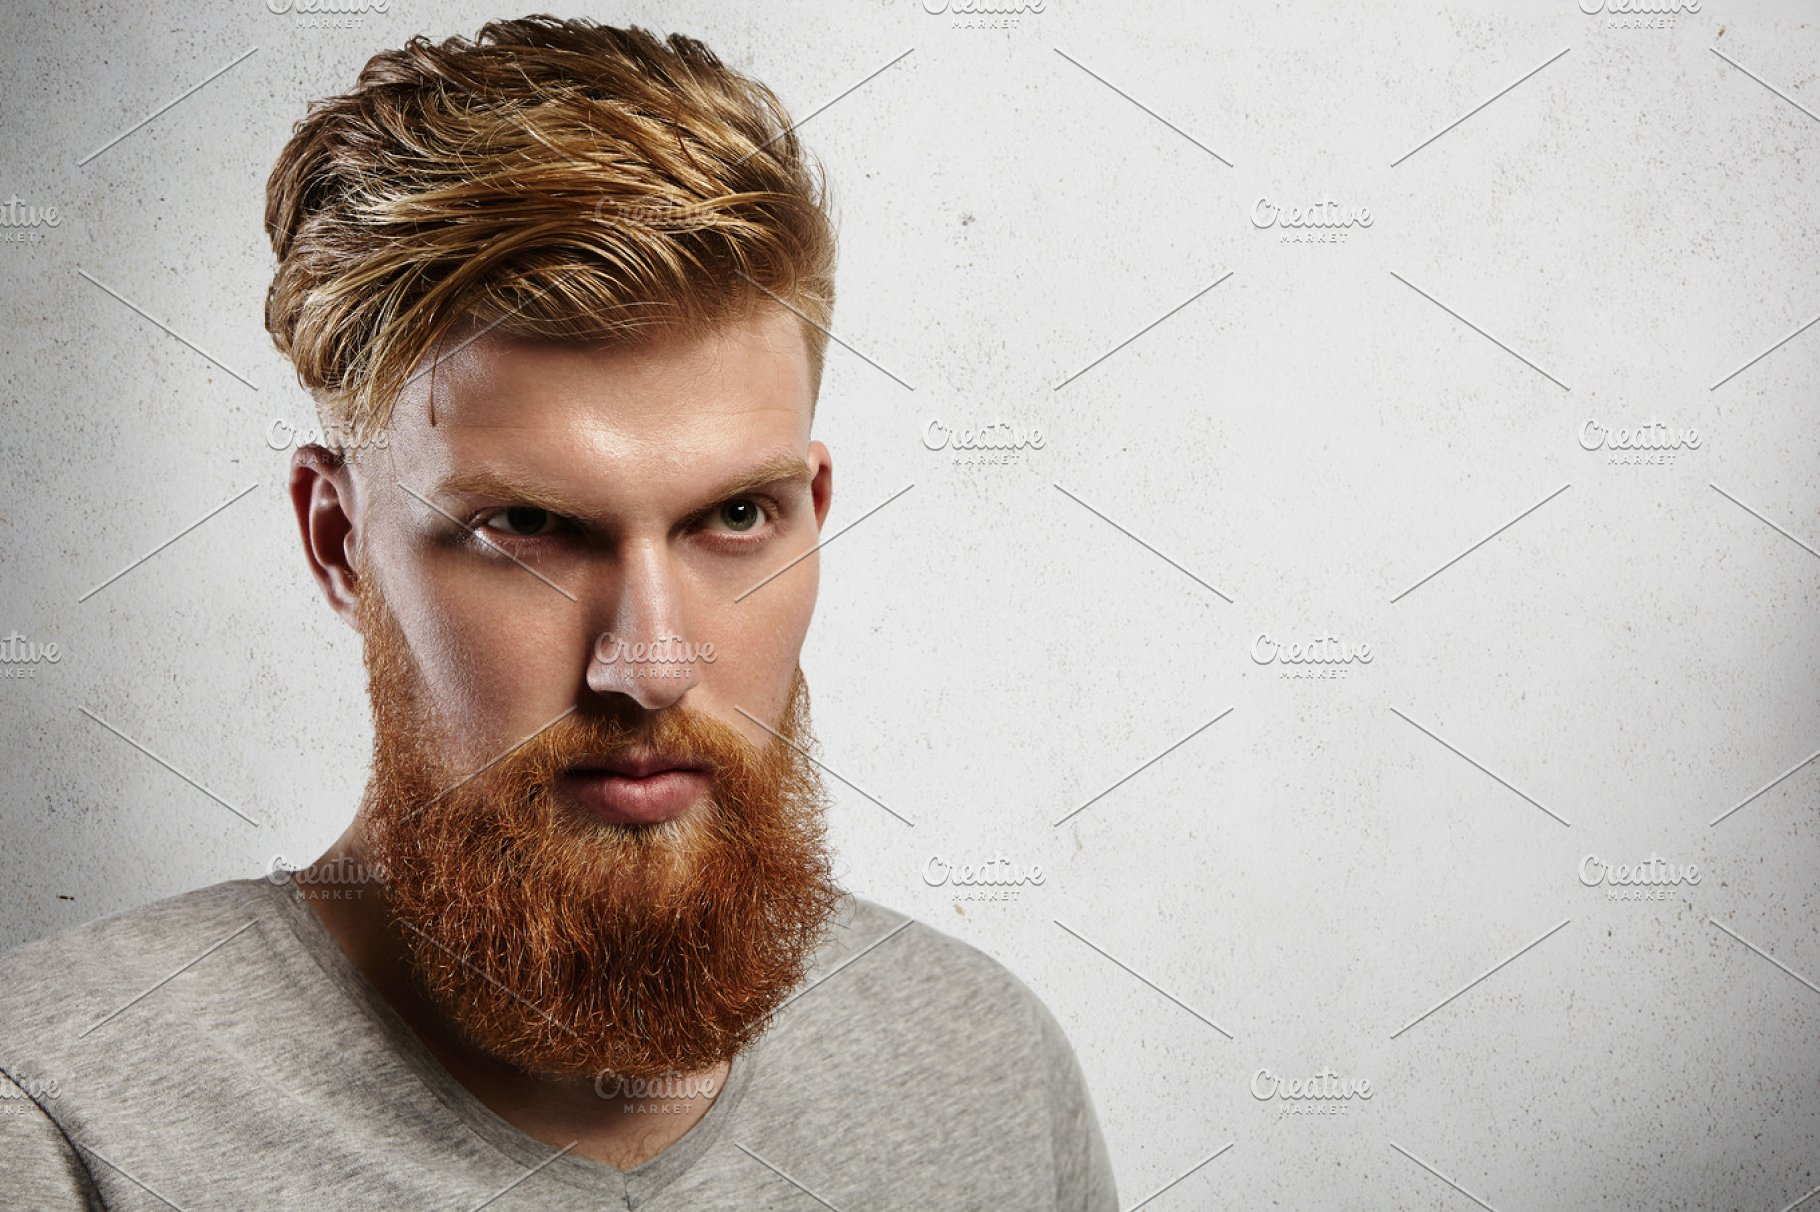 portrait of young european hipster with fair skin and trendy ginger beard.  fashionable undercut hairstyle and handsome face features together with